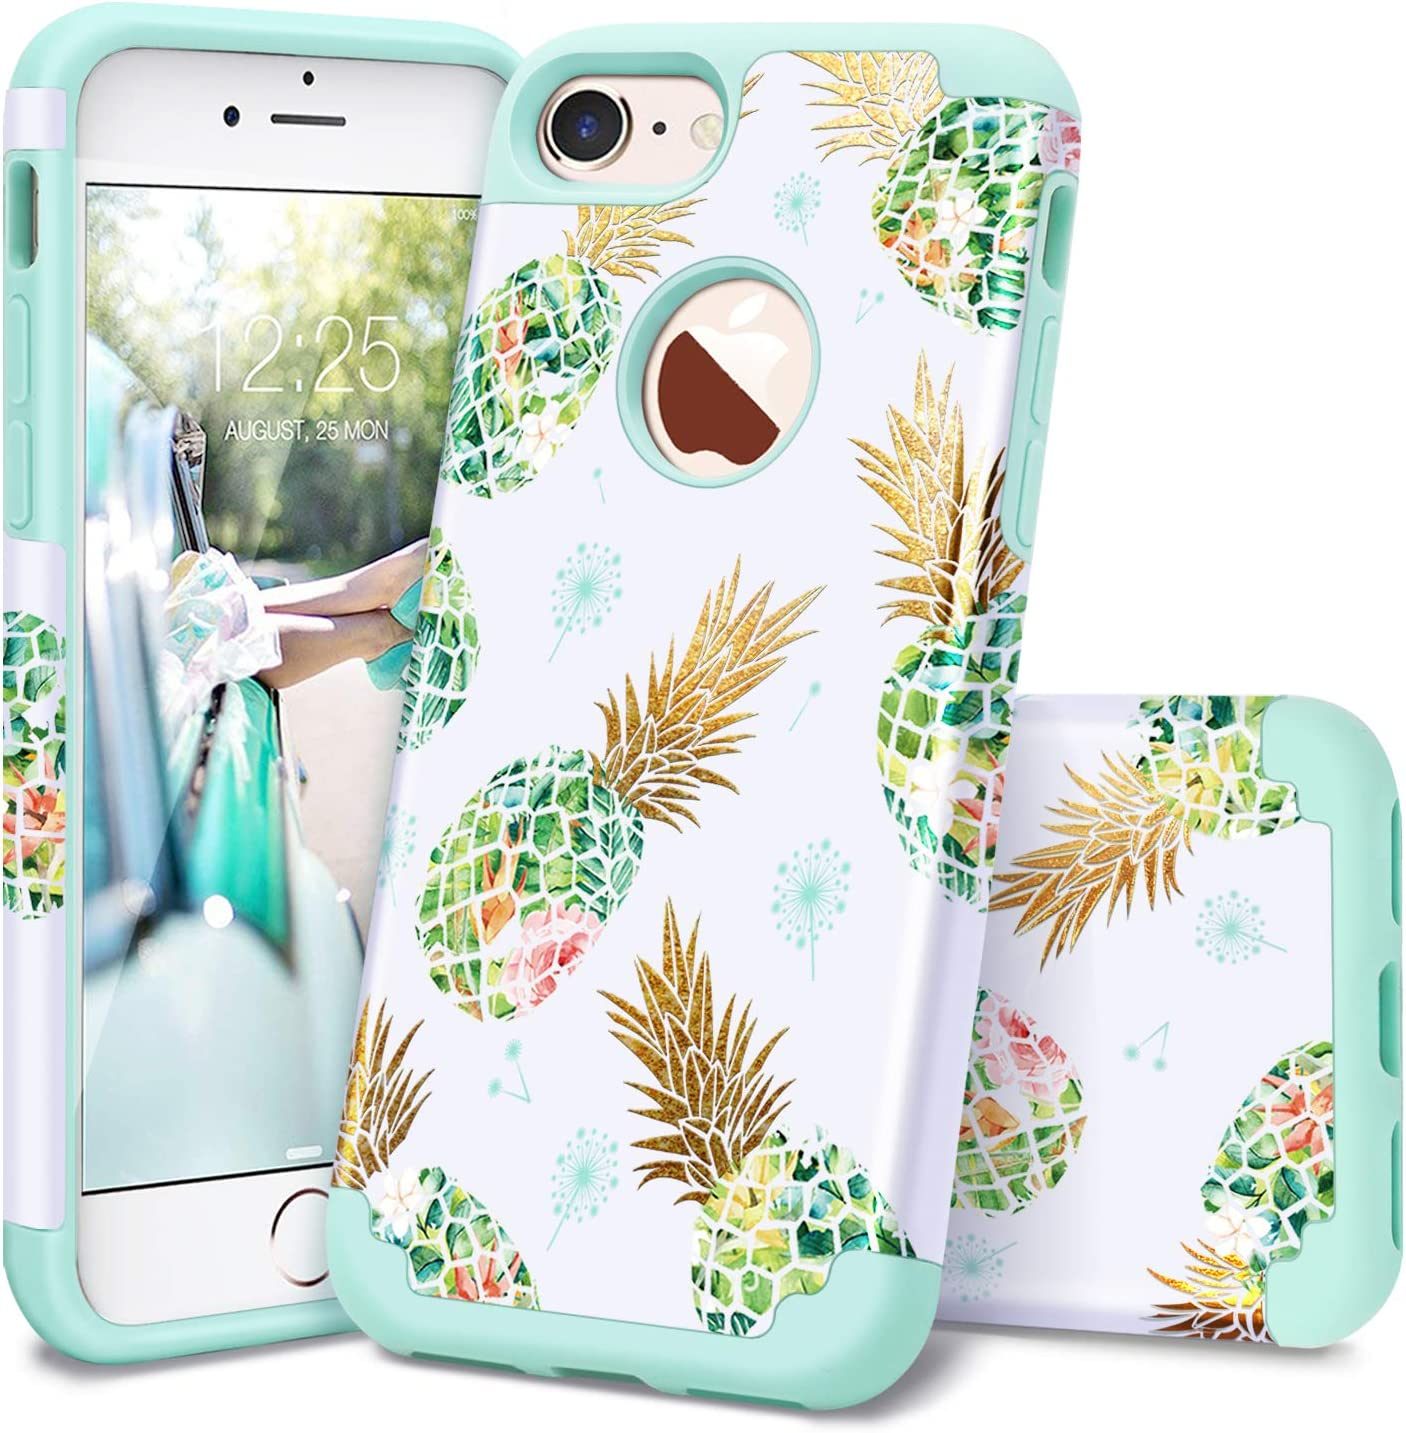 iPhone 7 Case,iPhone 8 Case,Casewind iPhone 7/8 Case Pineapple Slim Fit Hard PC Soft Silicone 2 in 1 Hybrid Protection Shockproof Anti Scratch Rubber Bumper iPhone 7 Phone Case for Girls,Mint Green